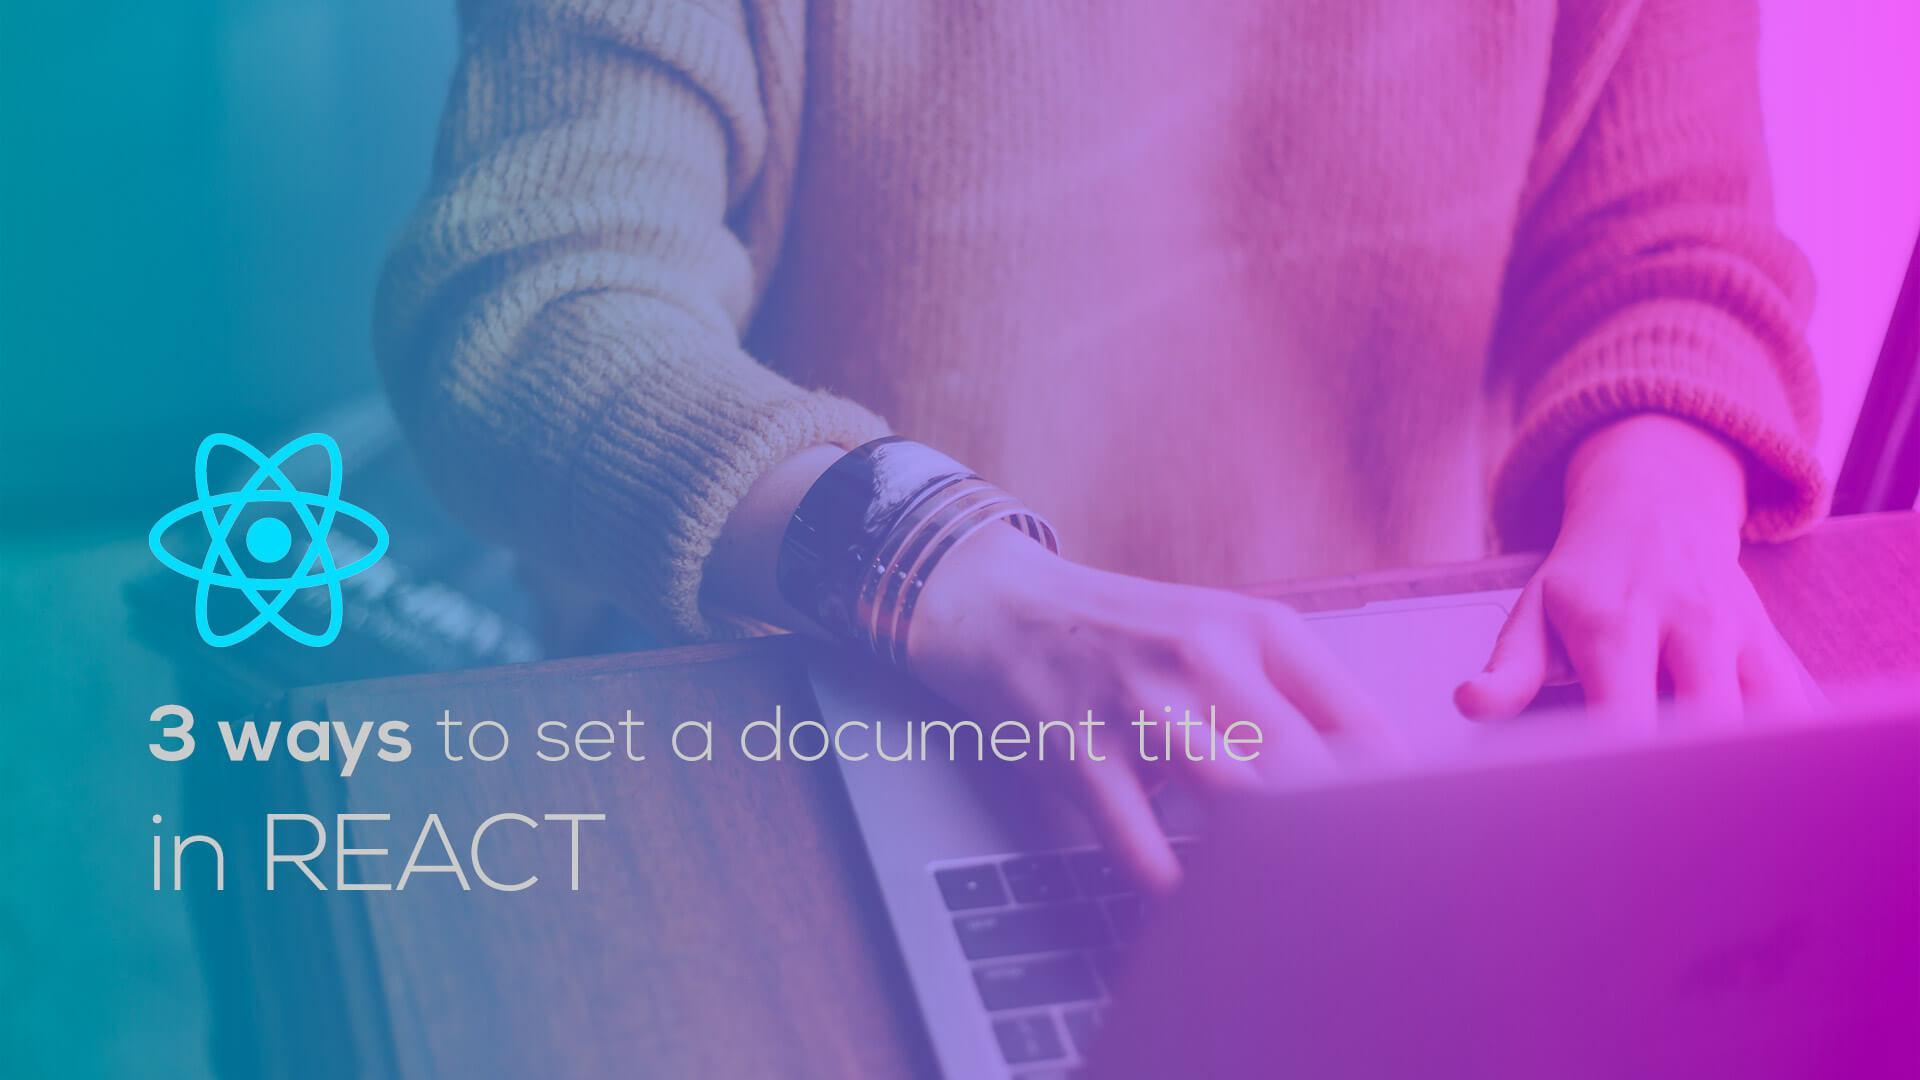 3 ways to set a document title in React